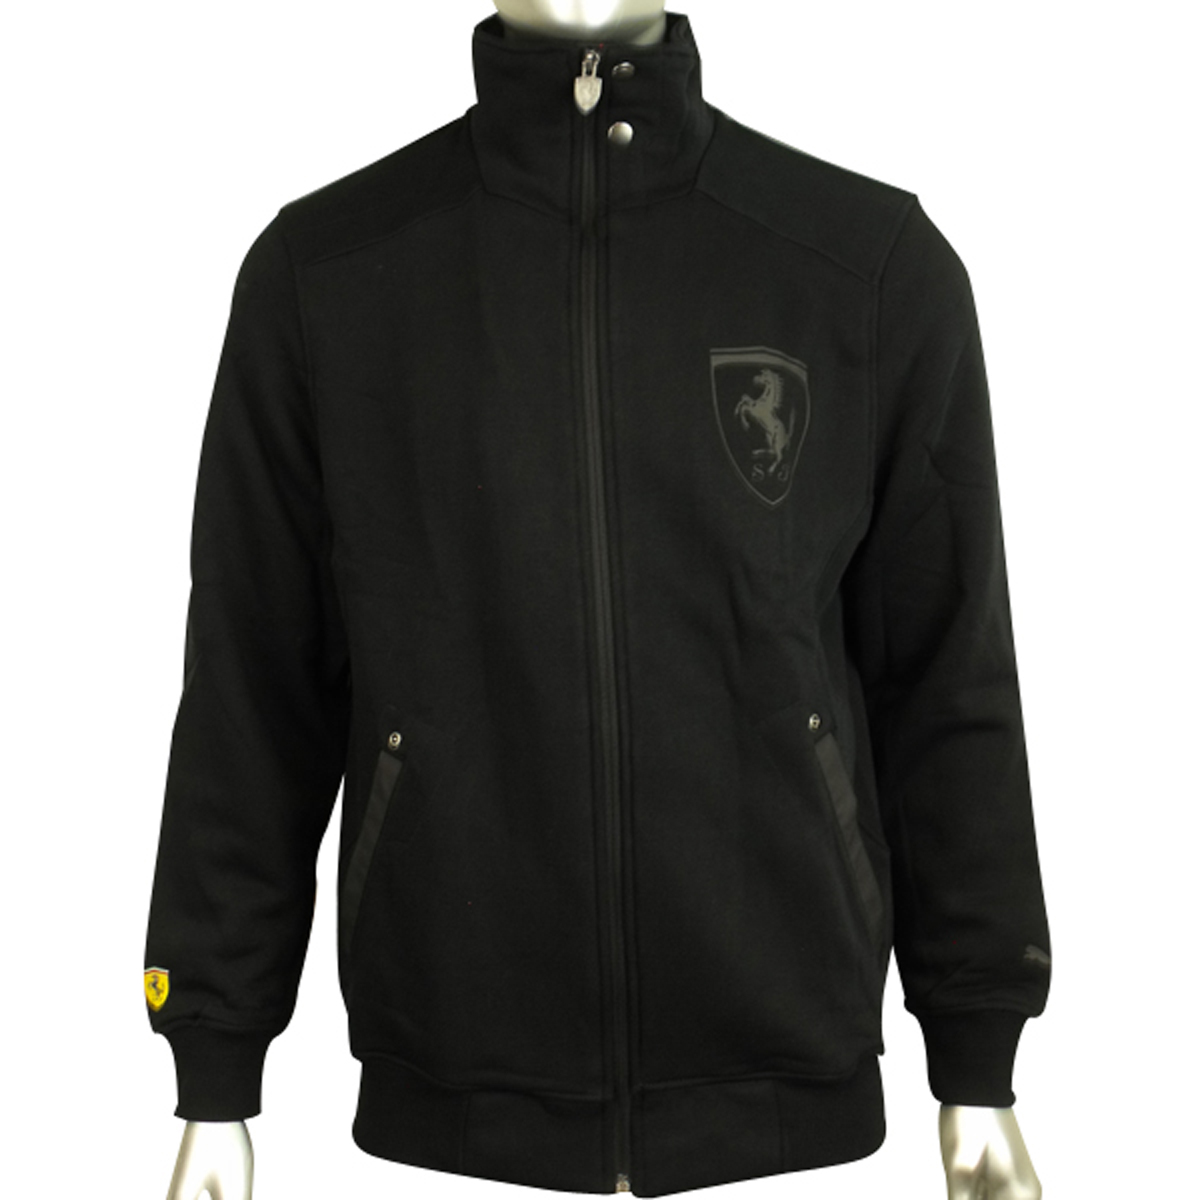 jacke herren sweatshirt puma scuderia ferrari sf formel 1. Black Bedroom Furniture Sets. Home Design Ideas